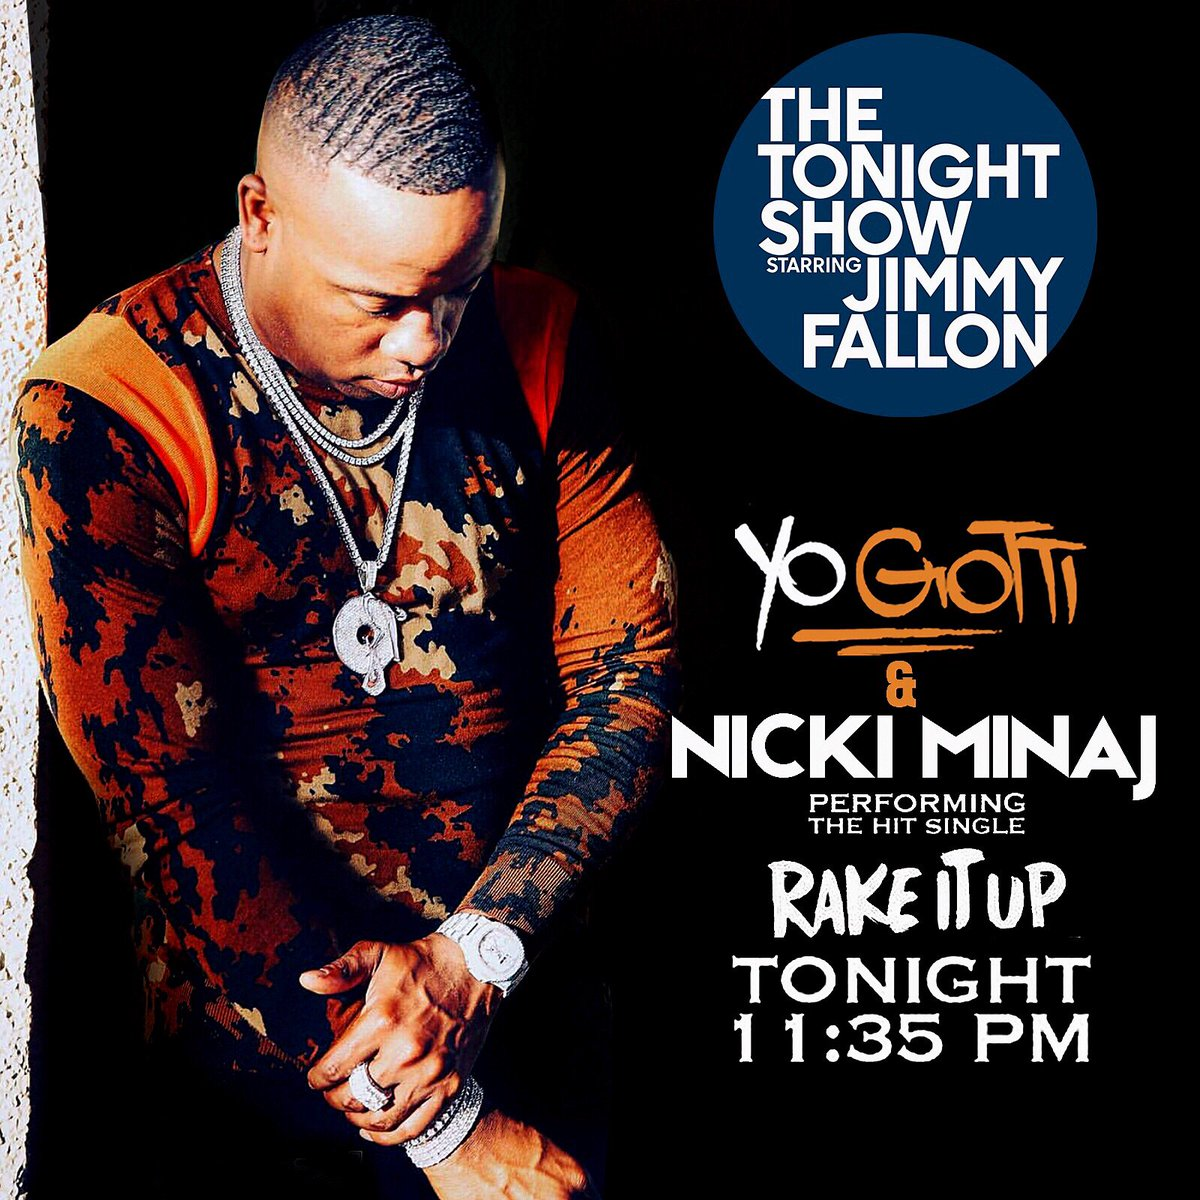 RT @yogottikom: WATCH ME ON @JimmyFallon Tonight / @Nickiminaj ???????????? https://t.co/Fn0lBMsBKF